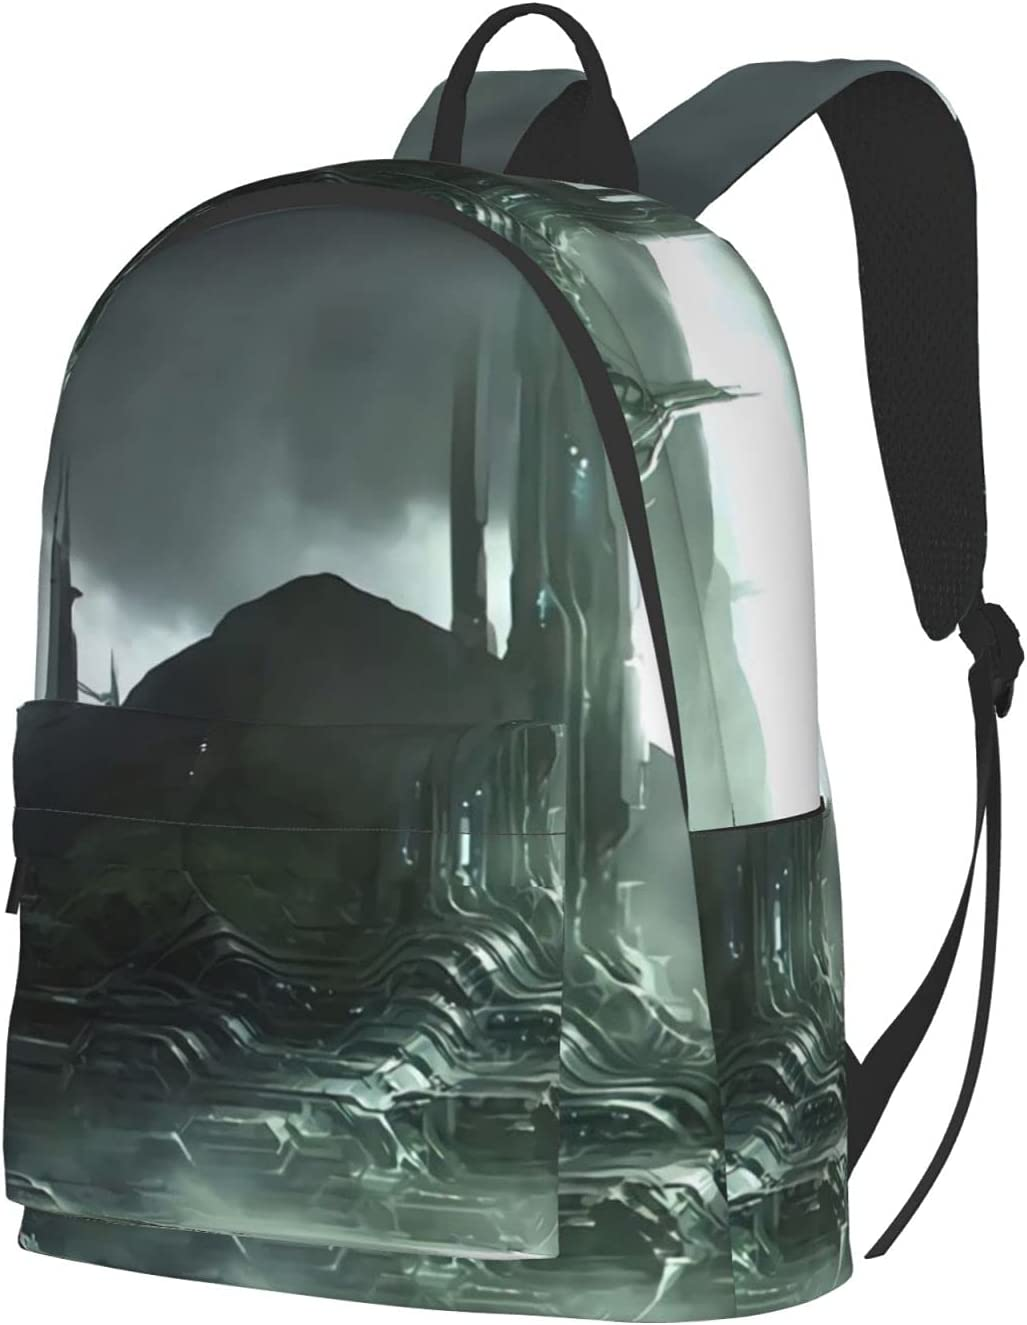 Large Capacity Backpack Water-Resistant Small Purse SEAL limited product Sho Cheap bargain